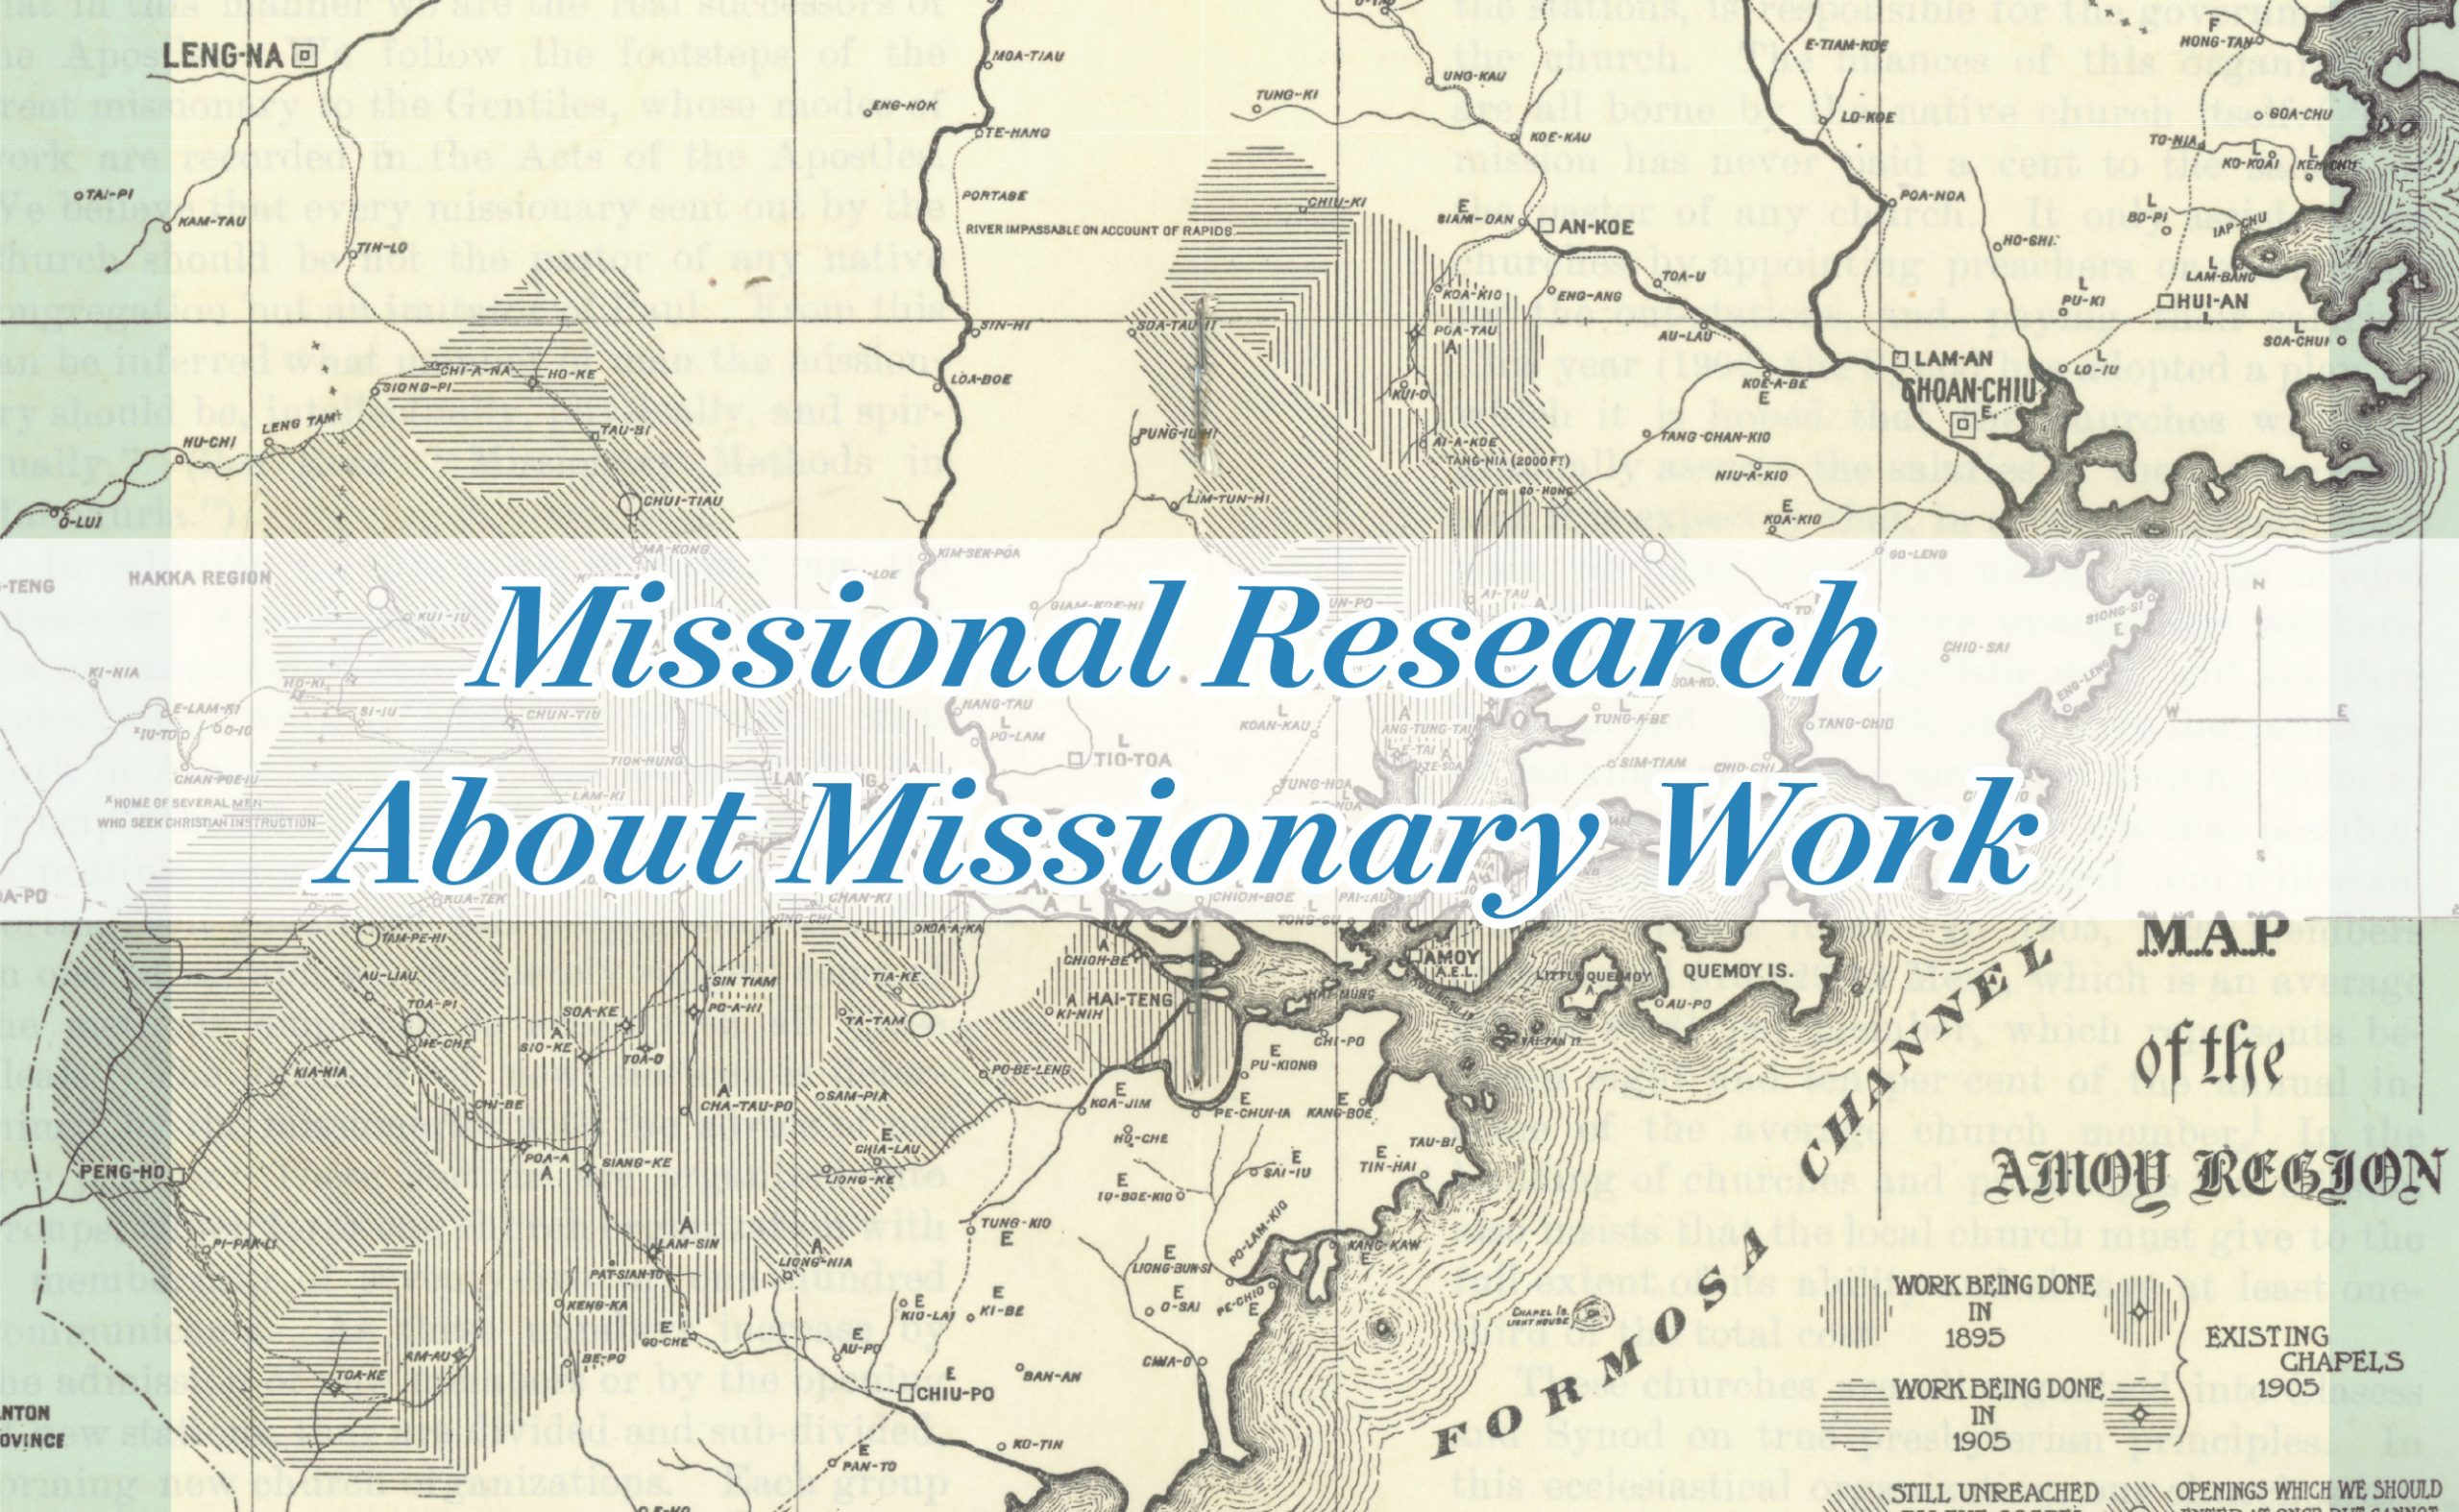 News from Hope: Missional Research about Missionary Work